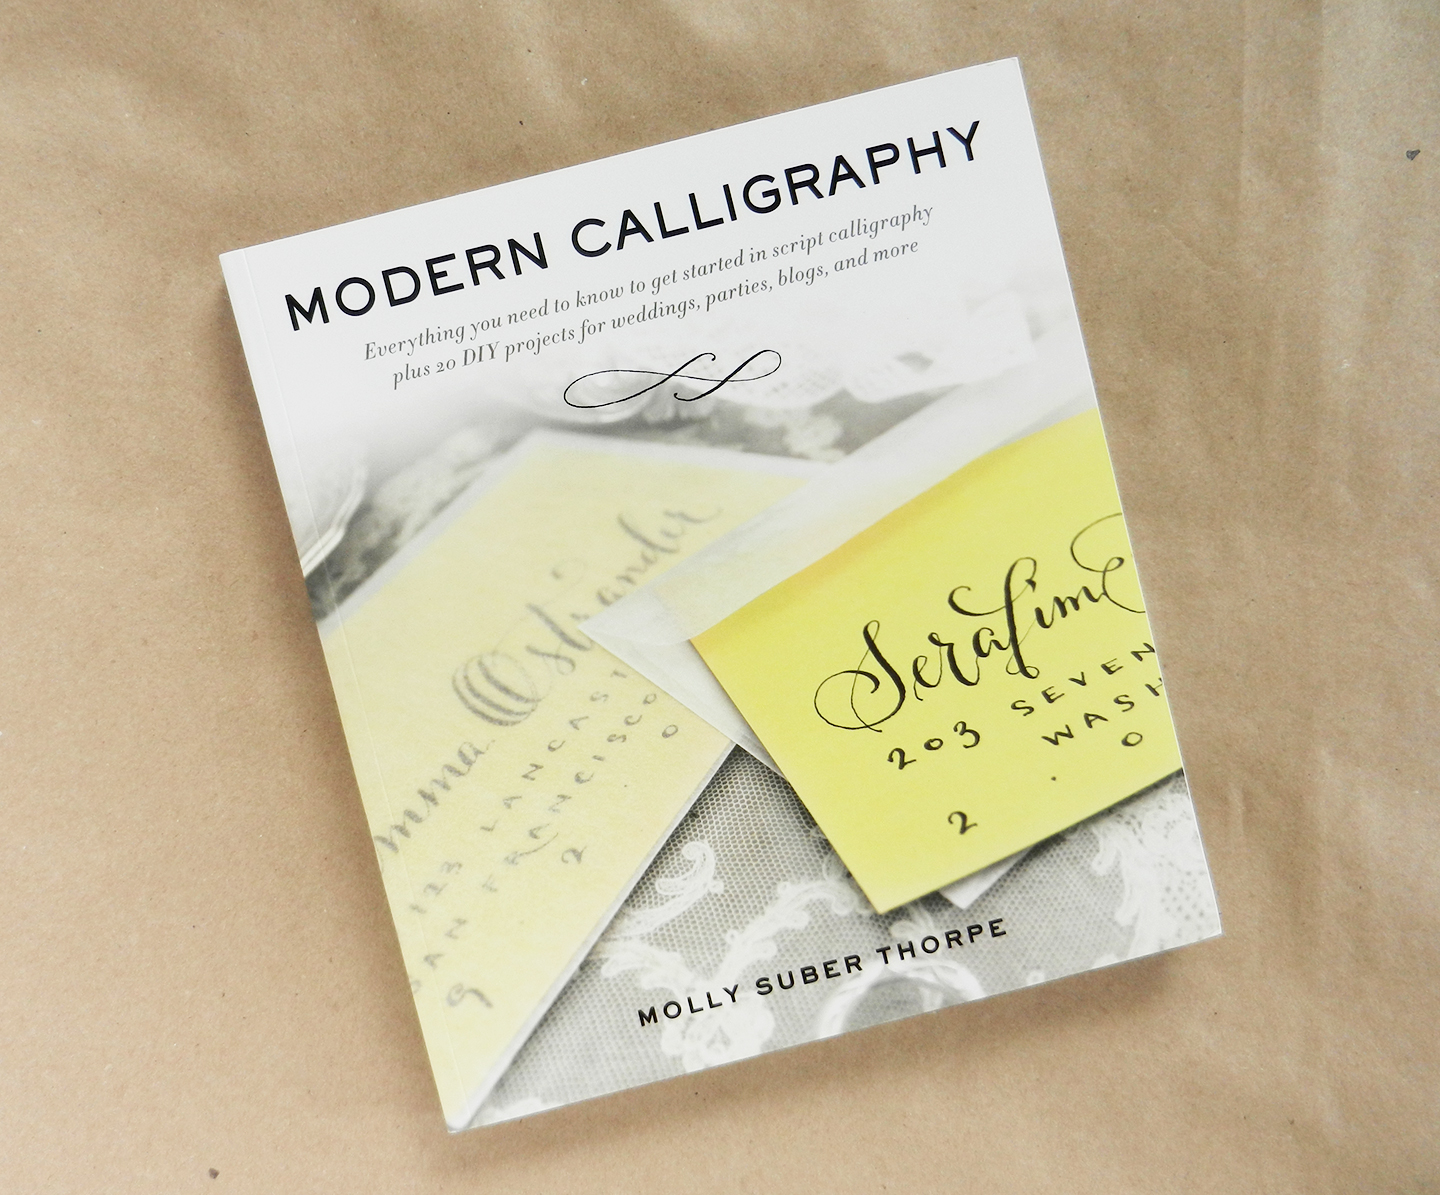 Calligraphy Fonts Books Pdf Modern Calligraphy By Molly Suber Thorpe Book Review The